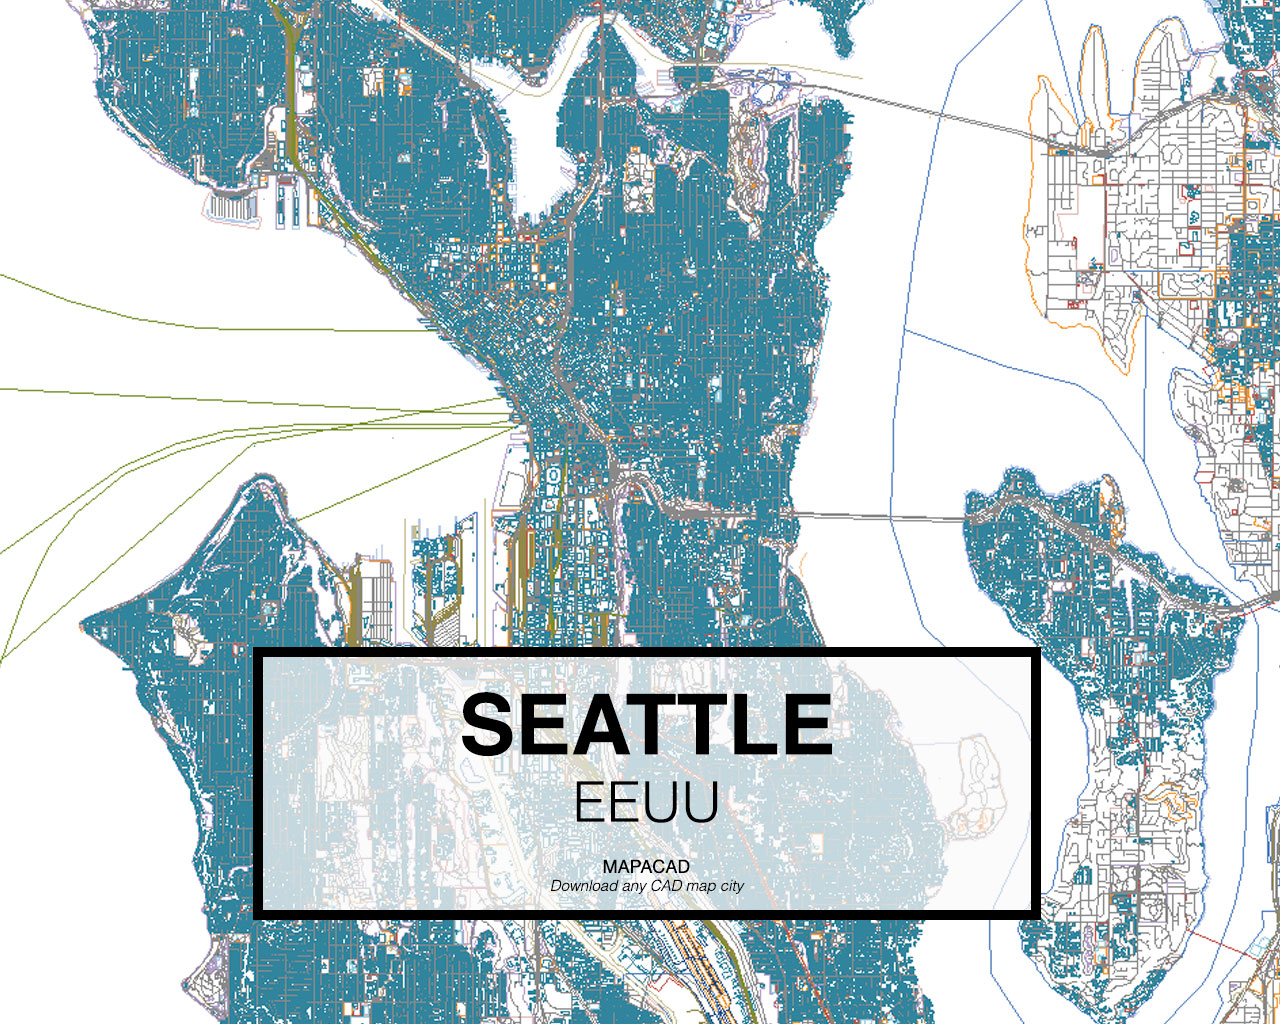 Download Seattle DWG Mapacad